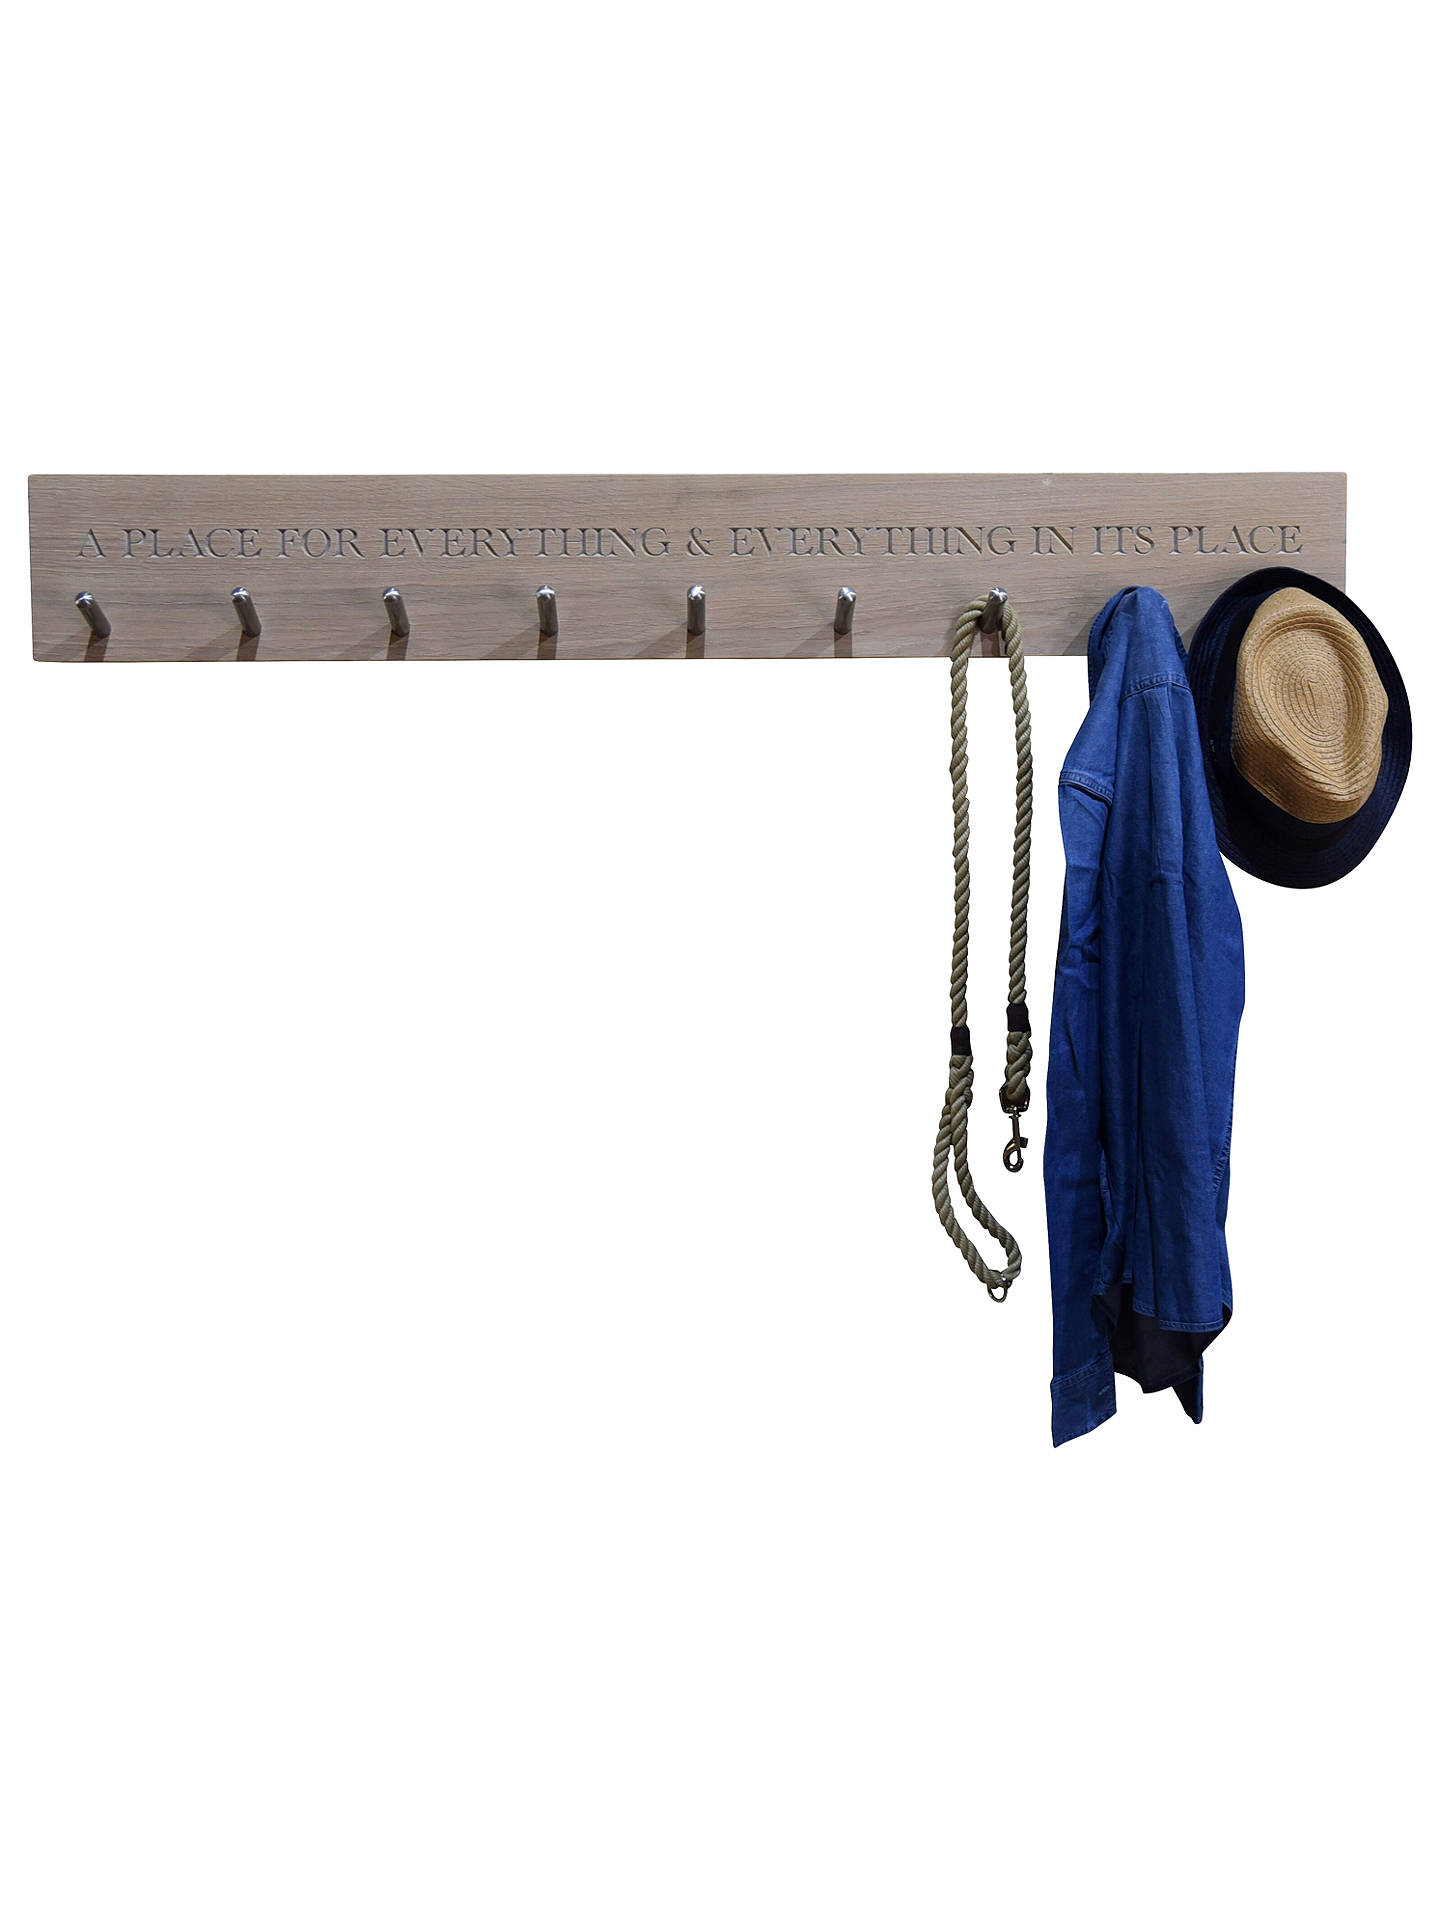 BuyThe Oak And Rope Company Personalised 2 Peg Rail Online at johnlewis.com